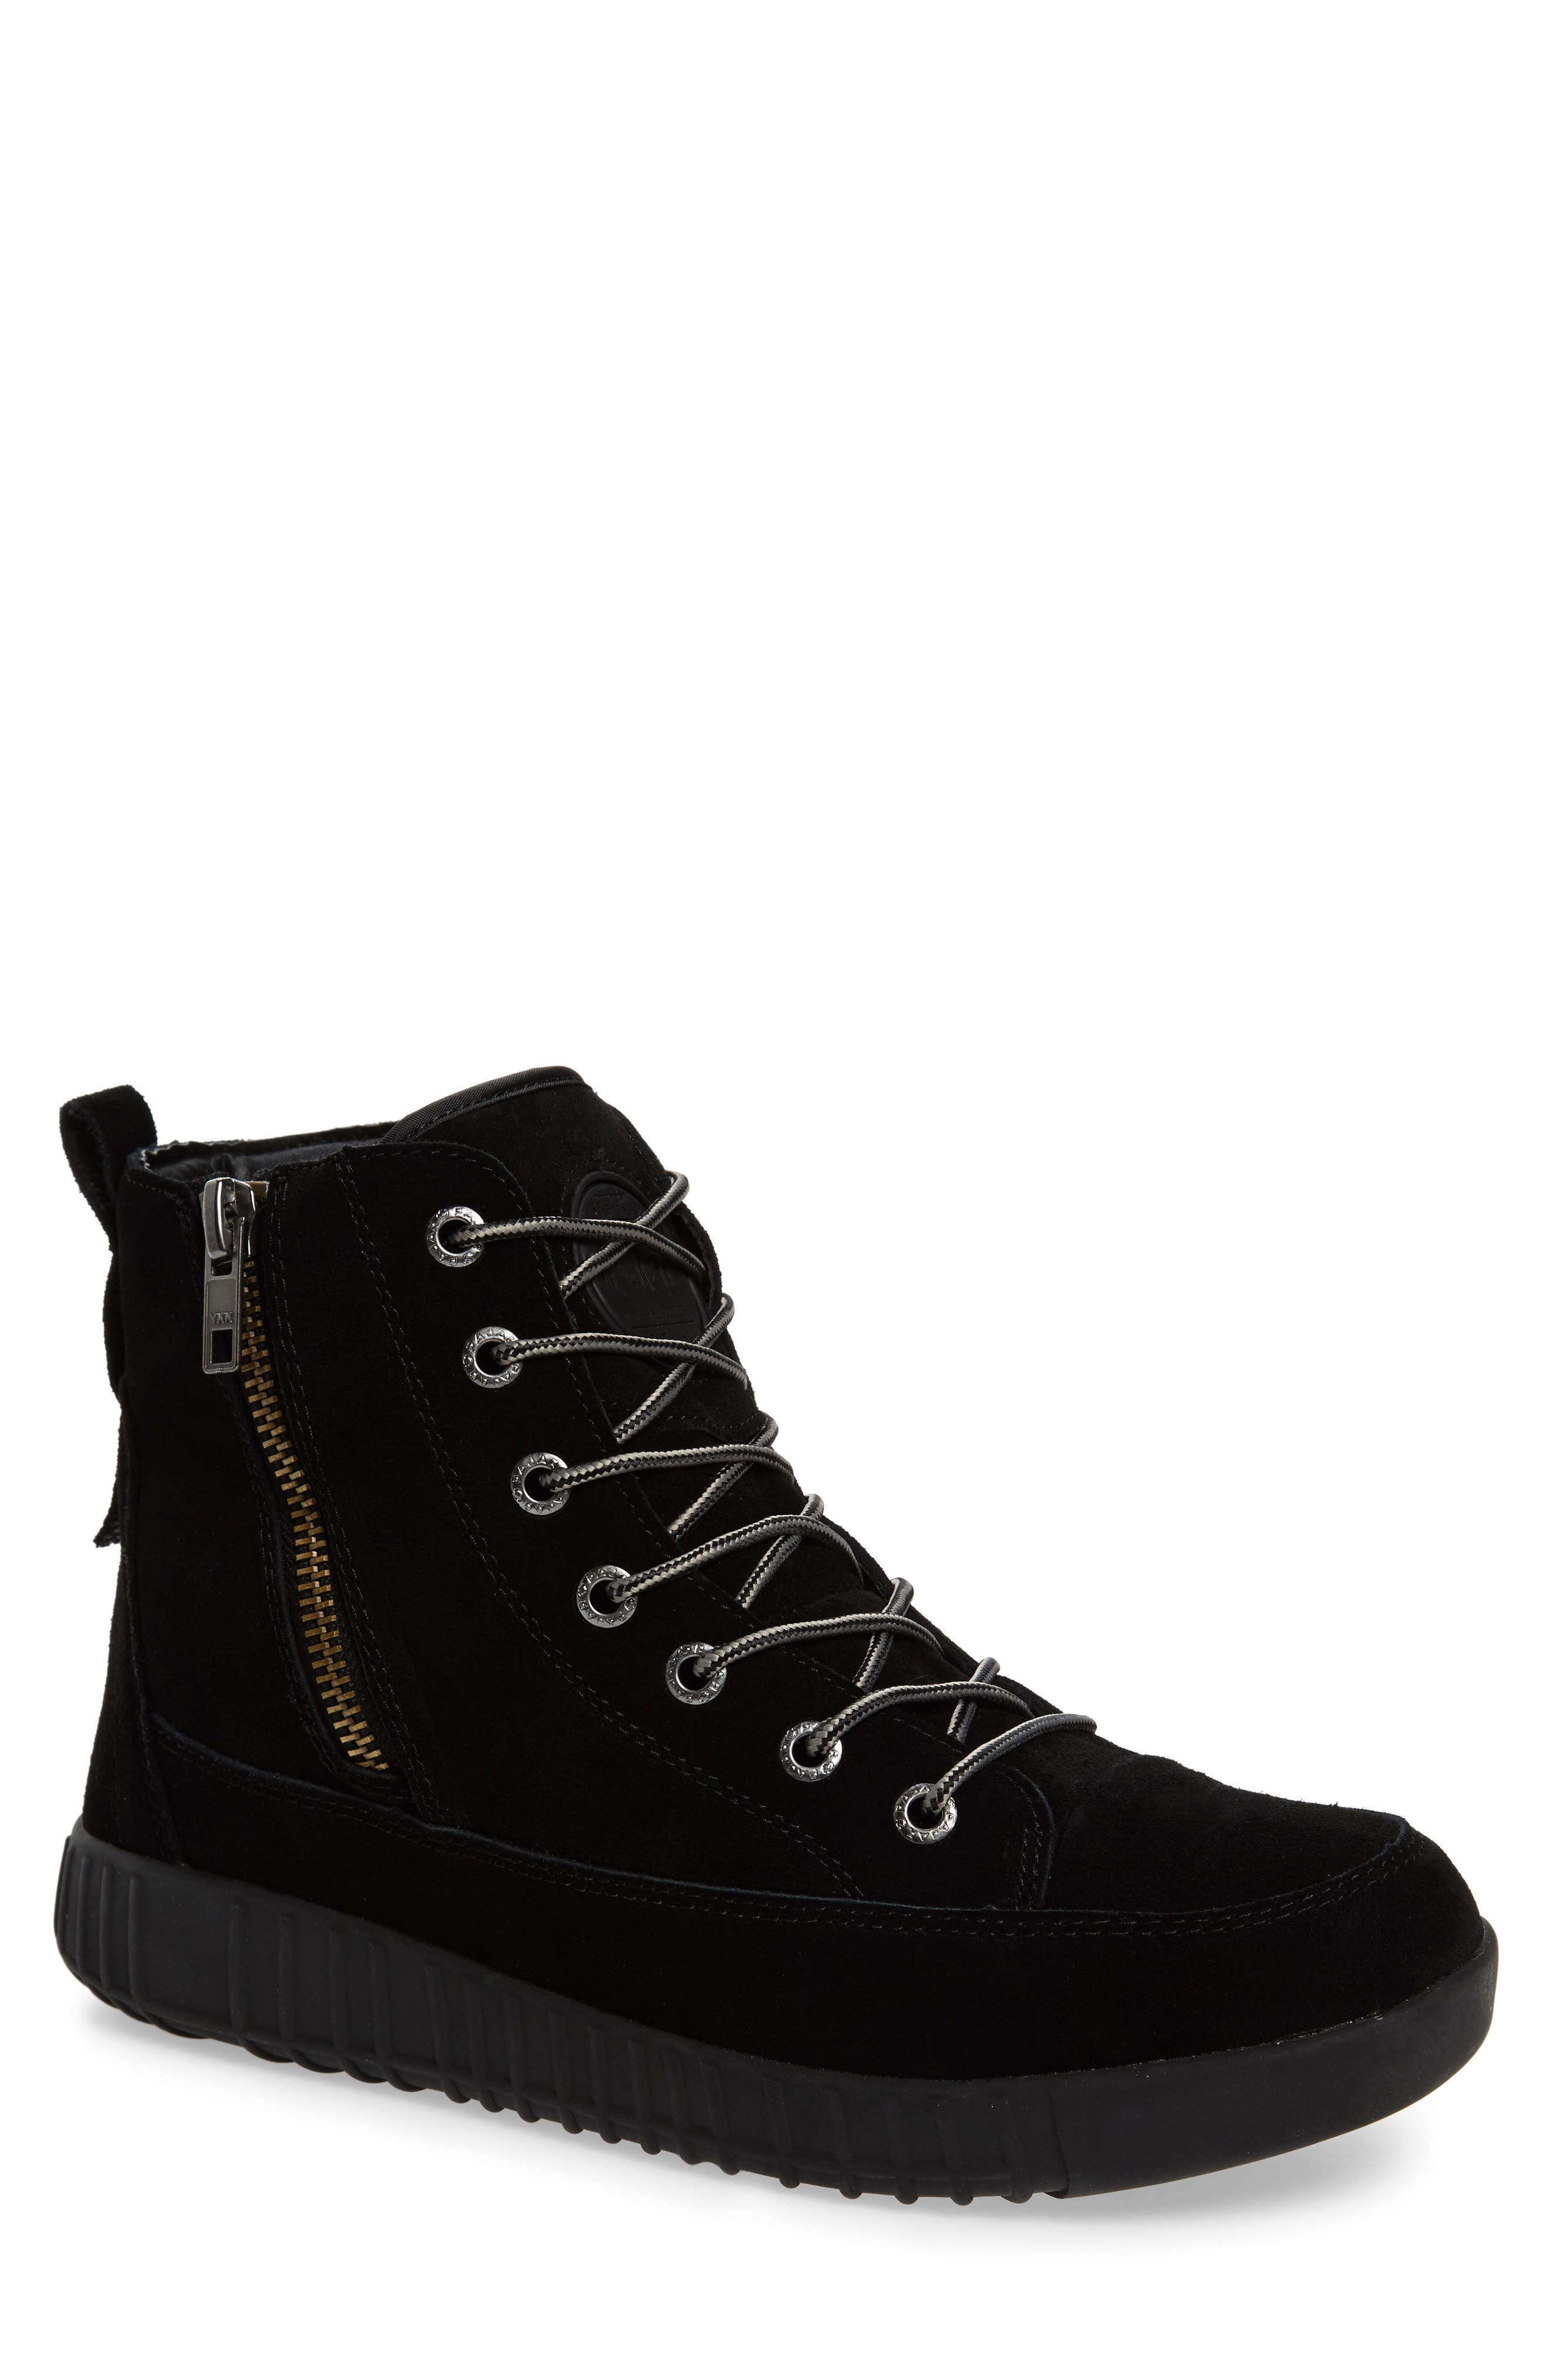 Parnell Waterproof Winter Sneaker,                             Main thumbnail 1, color,                             Black Leather